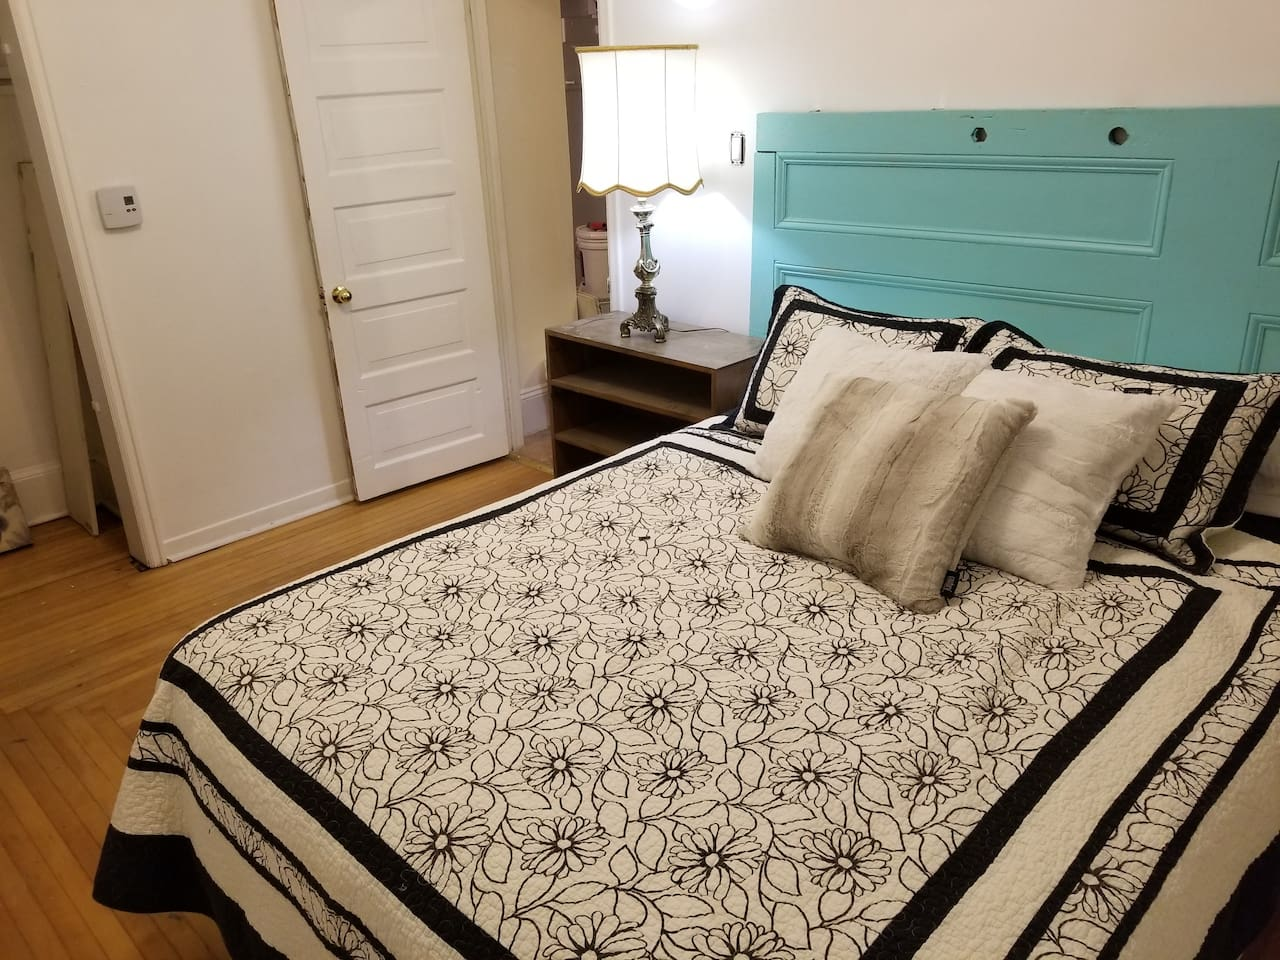 A lot of care was put into every detail of this apartment. Note the headboard is a refurbished hardwood door brought back to life with a bold splash. It rests above a super comfy, brand new queen sized bed.